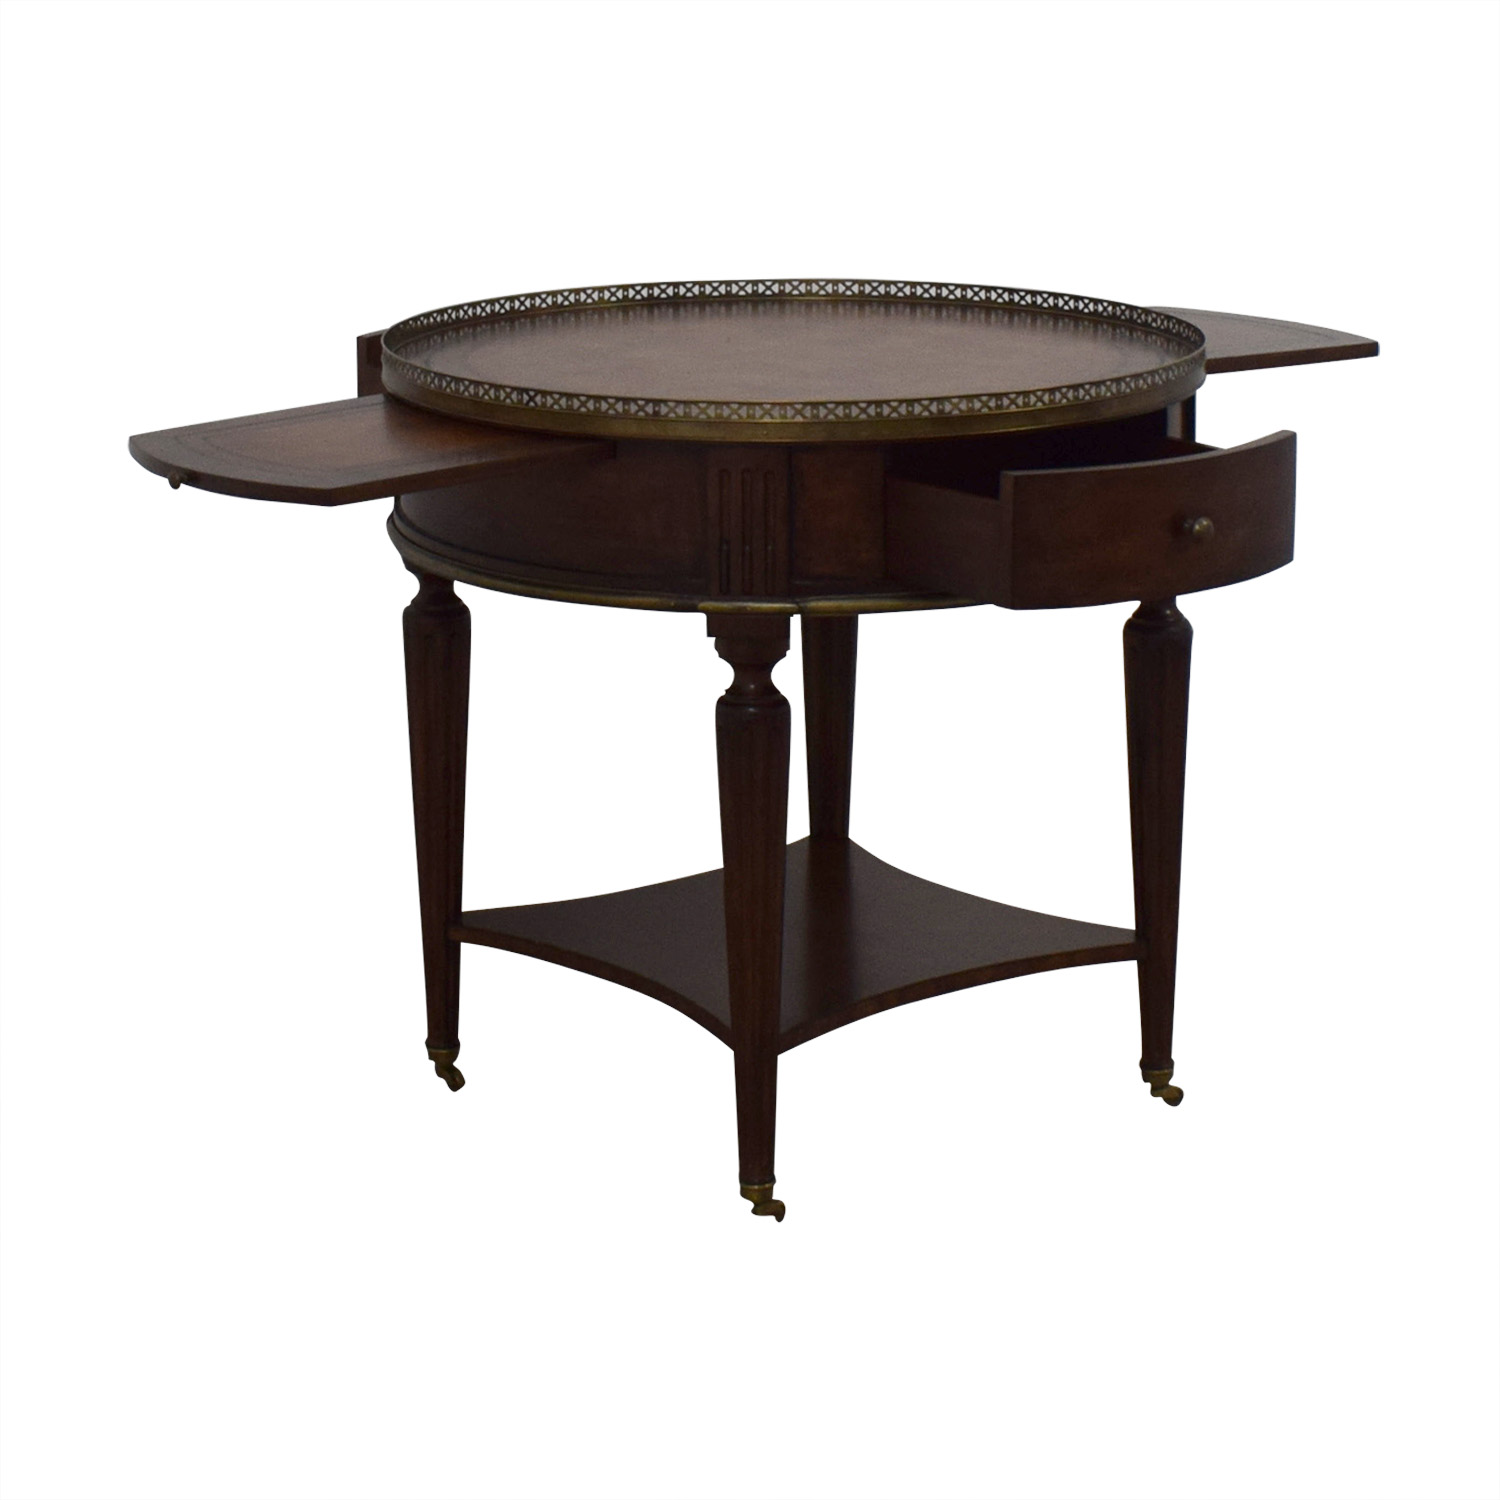 John Richard John Richard European Crossroads Bouillotte Table coupon